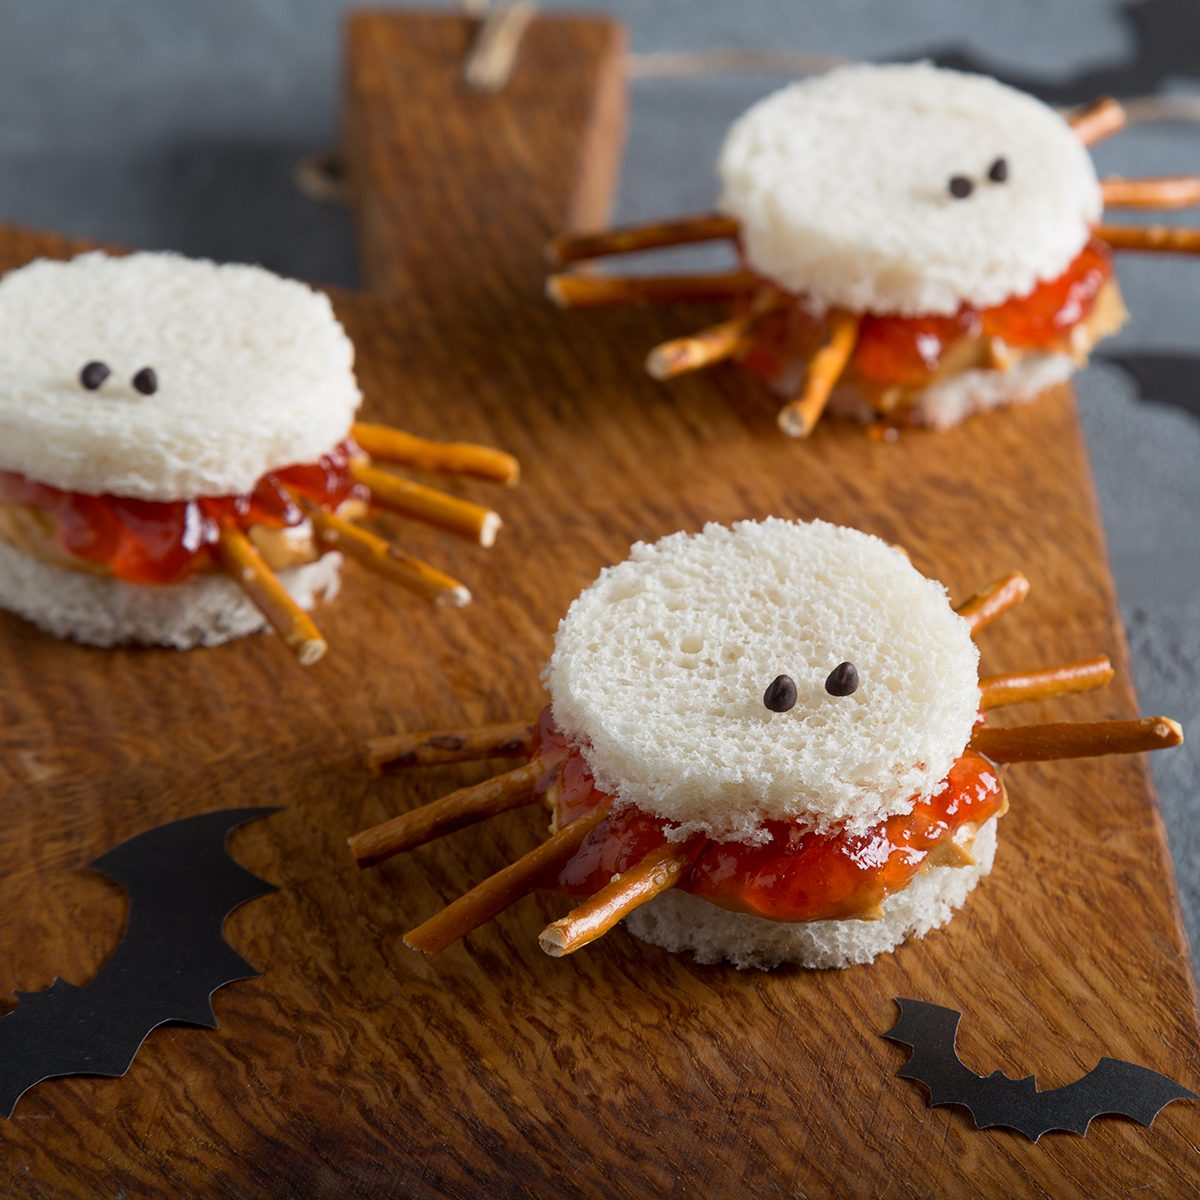 Spooky peanut butter and jelly spider sandwiches with paper bats for halloween on a brown rustic cutting board.